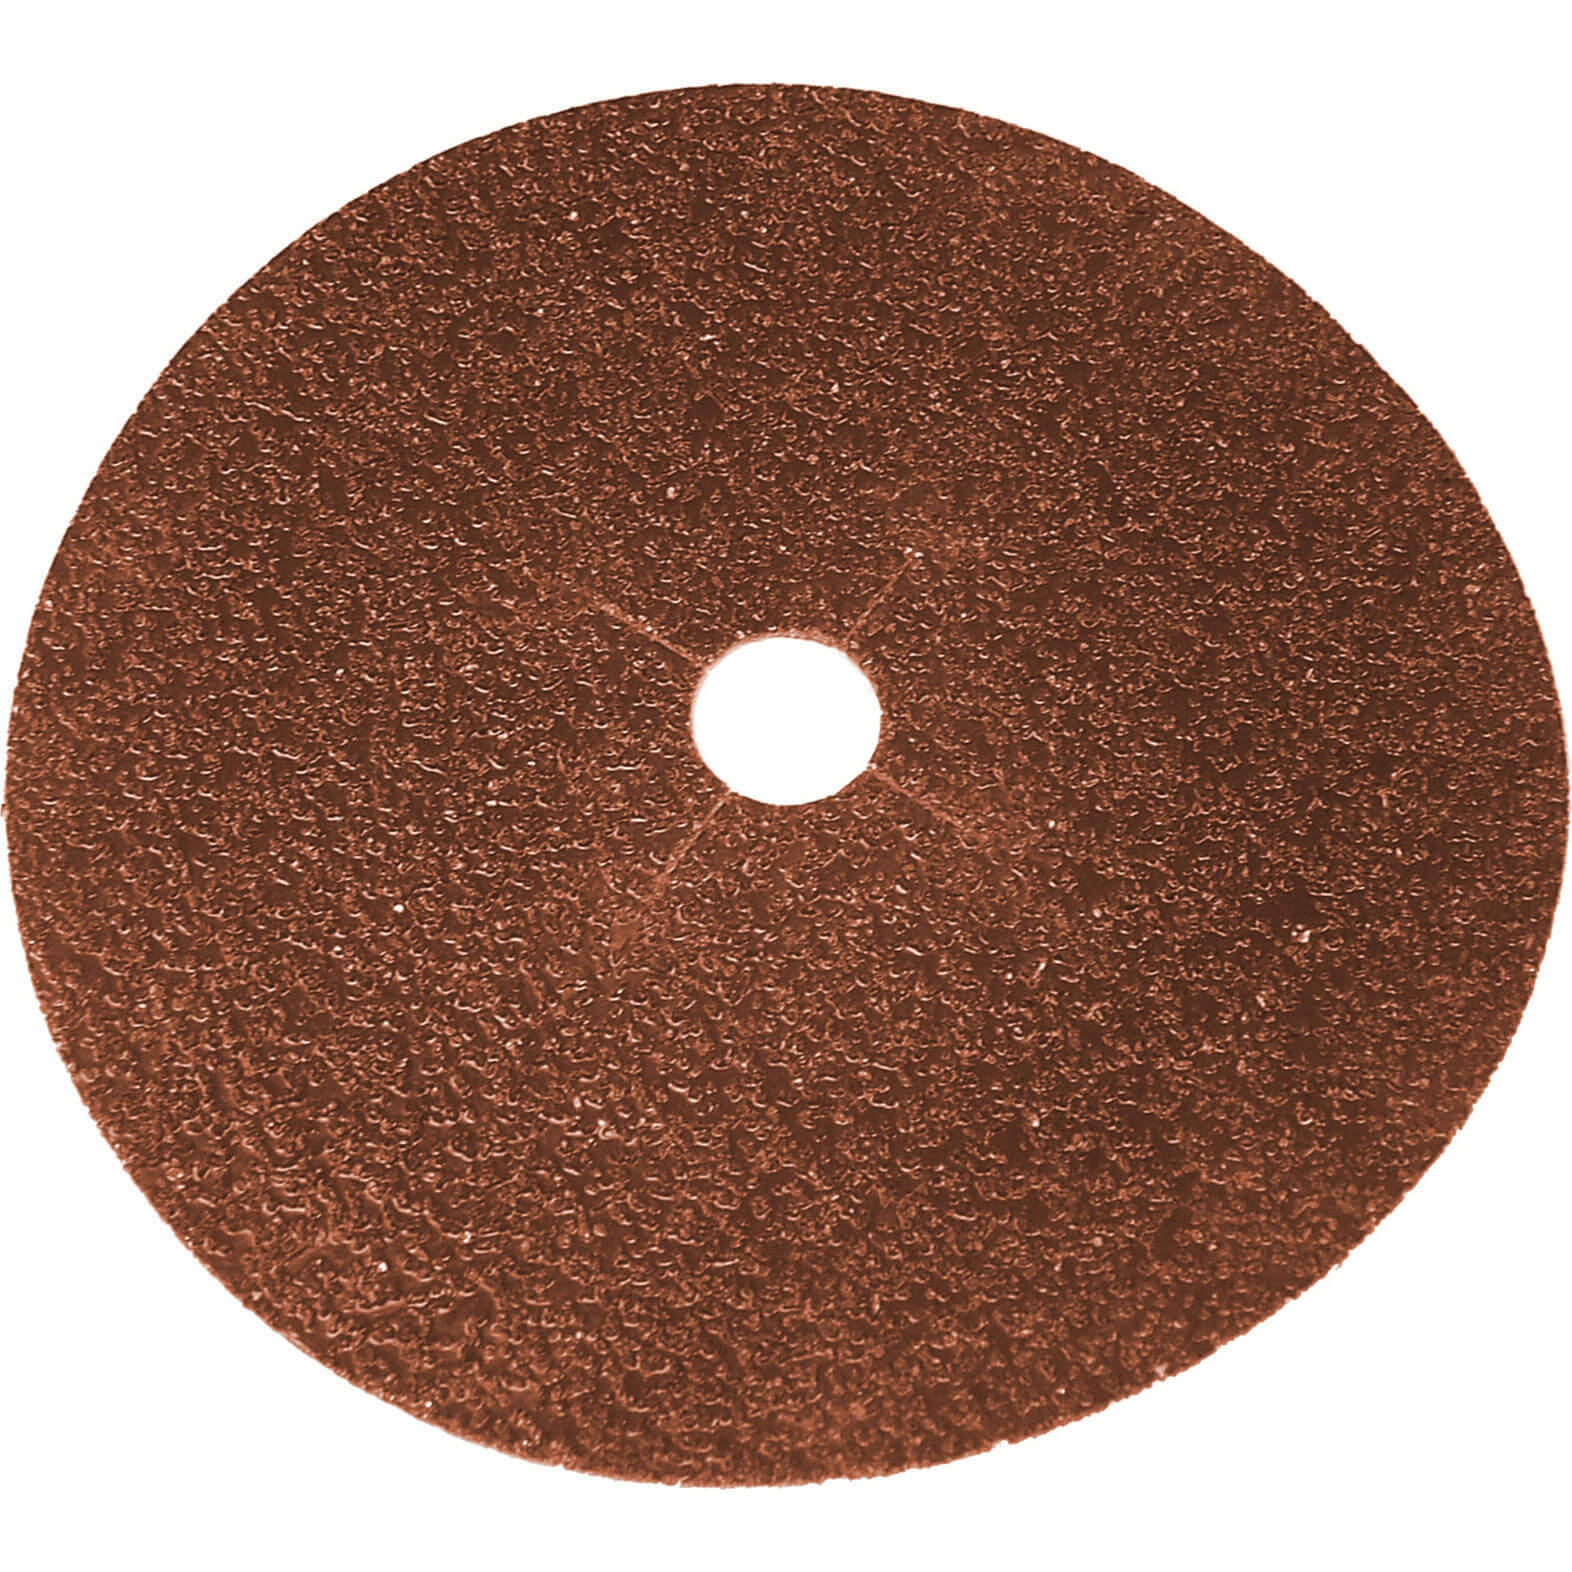 Faithfull Floor Disc Ewt Aluminium Oxide 178mm X 22mm 24 Grit